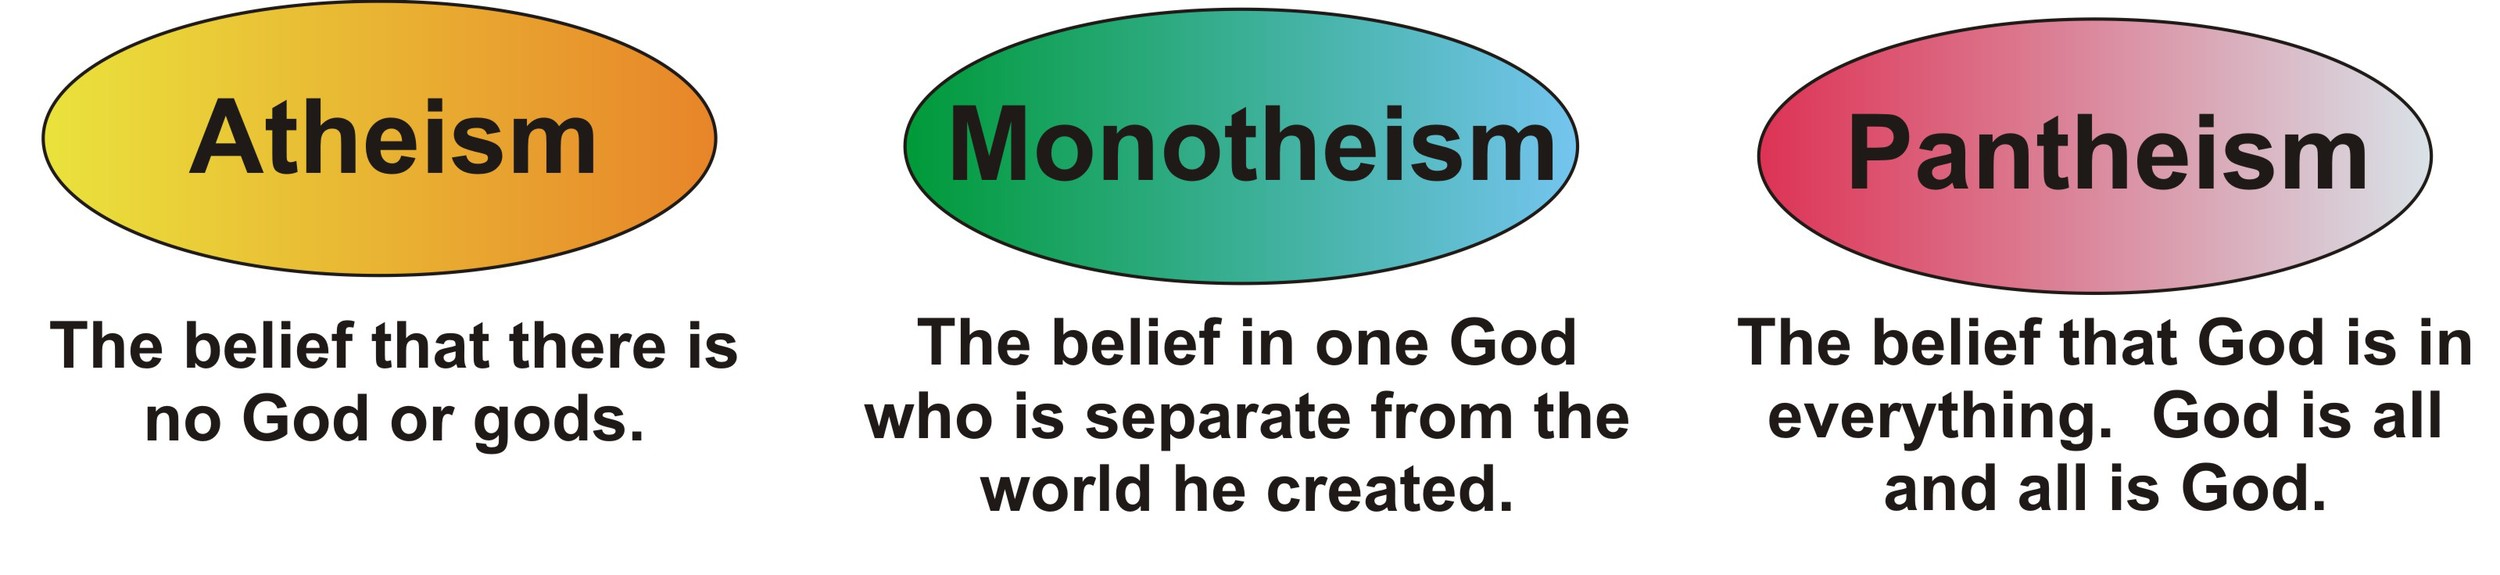 Atheism Monotheism & Pantheism Worldview Categories